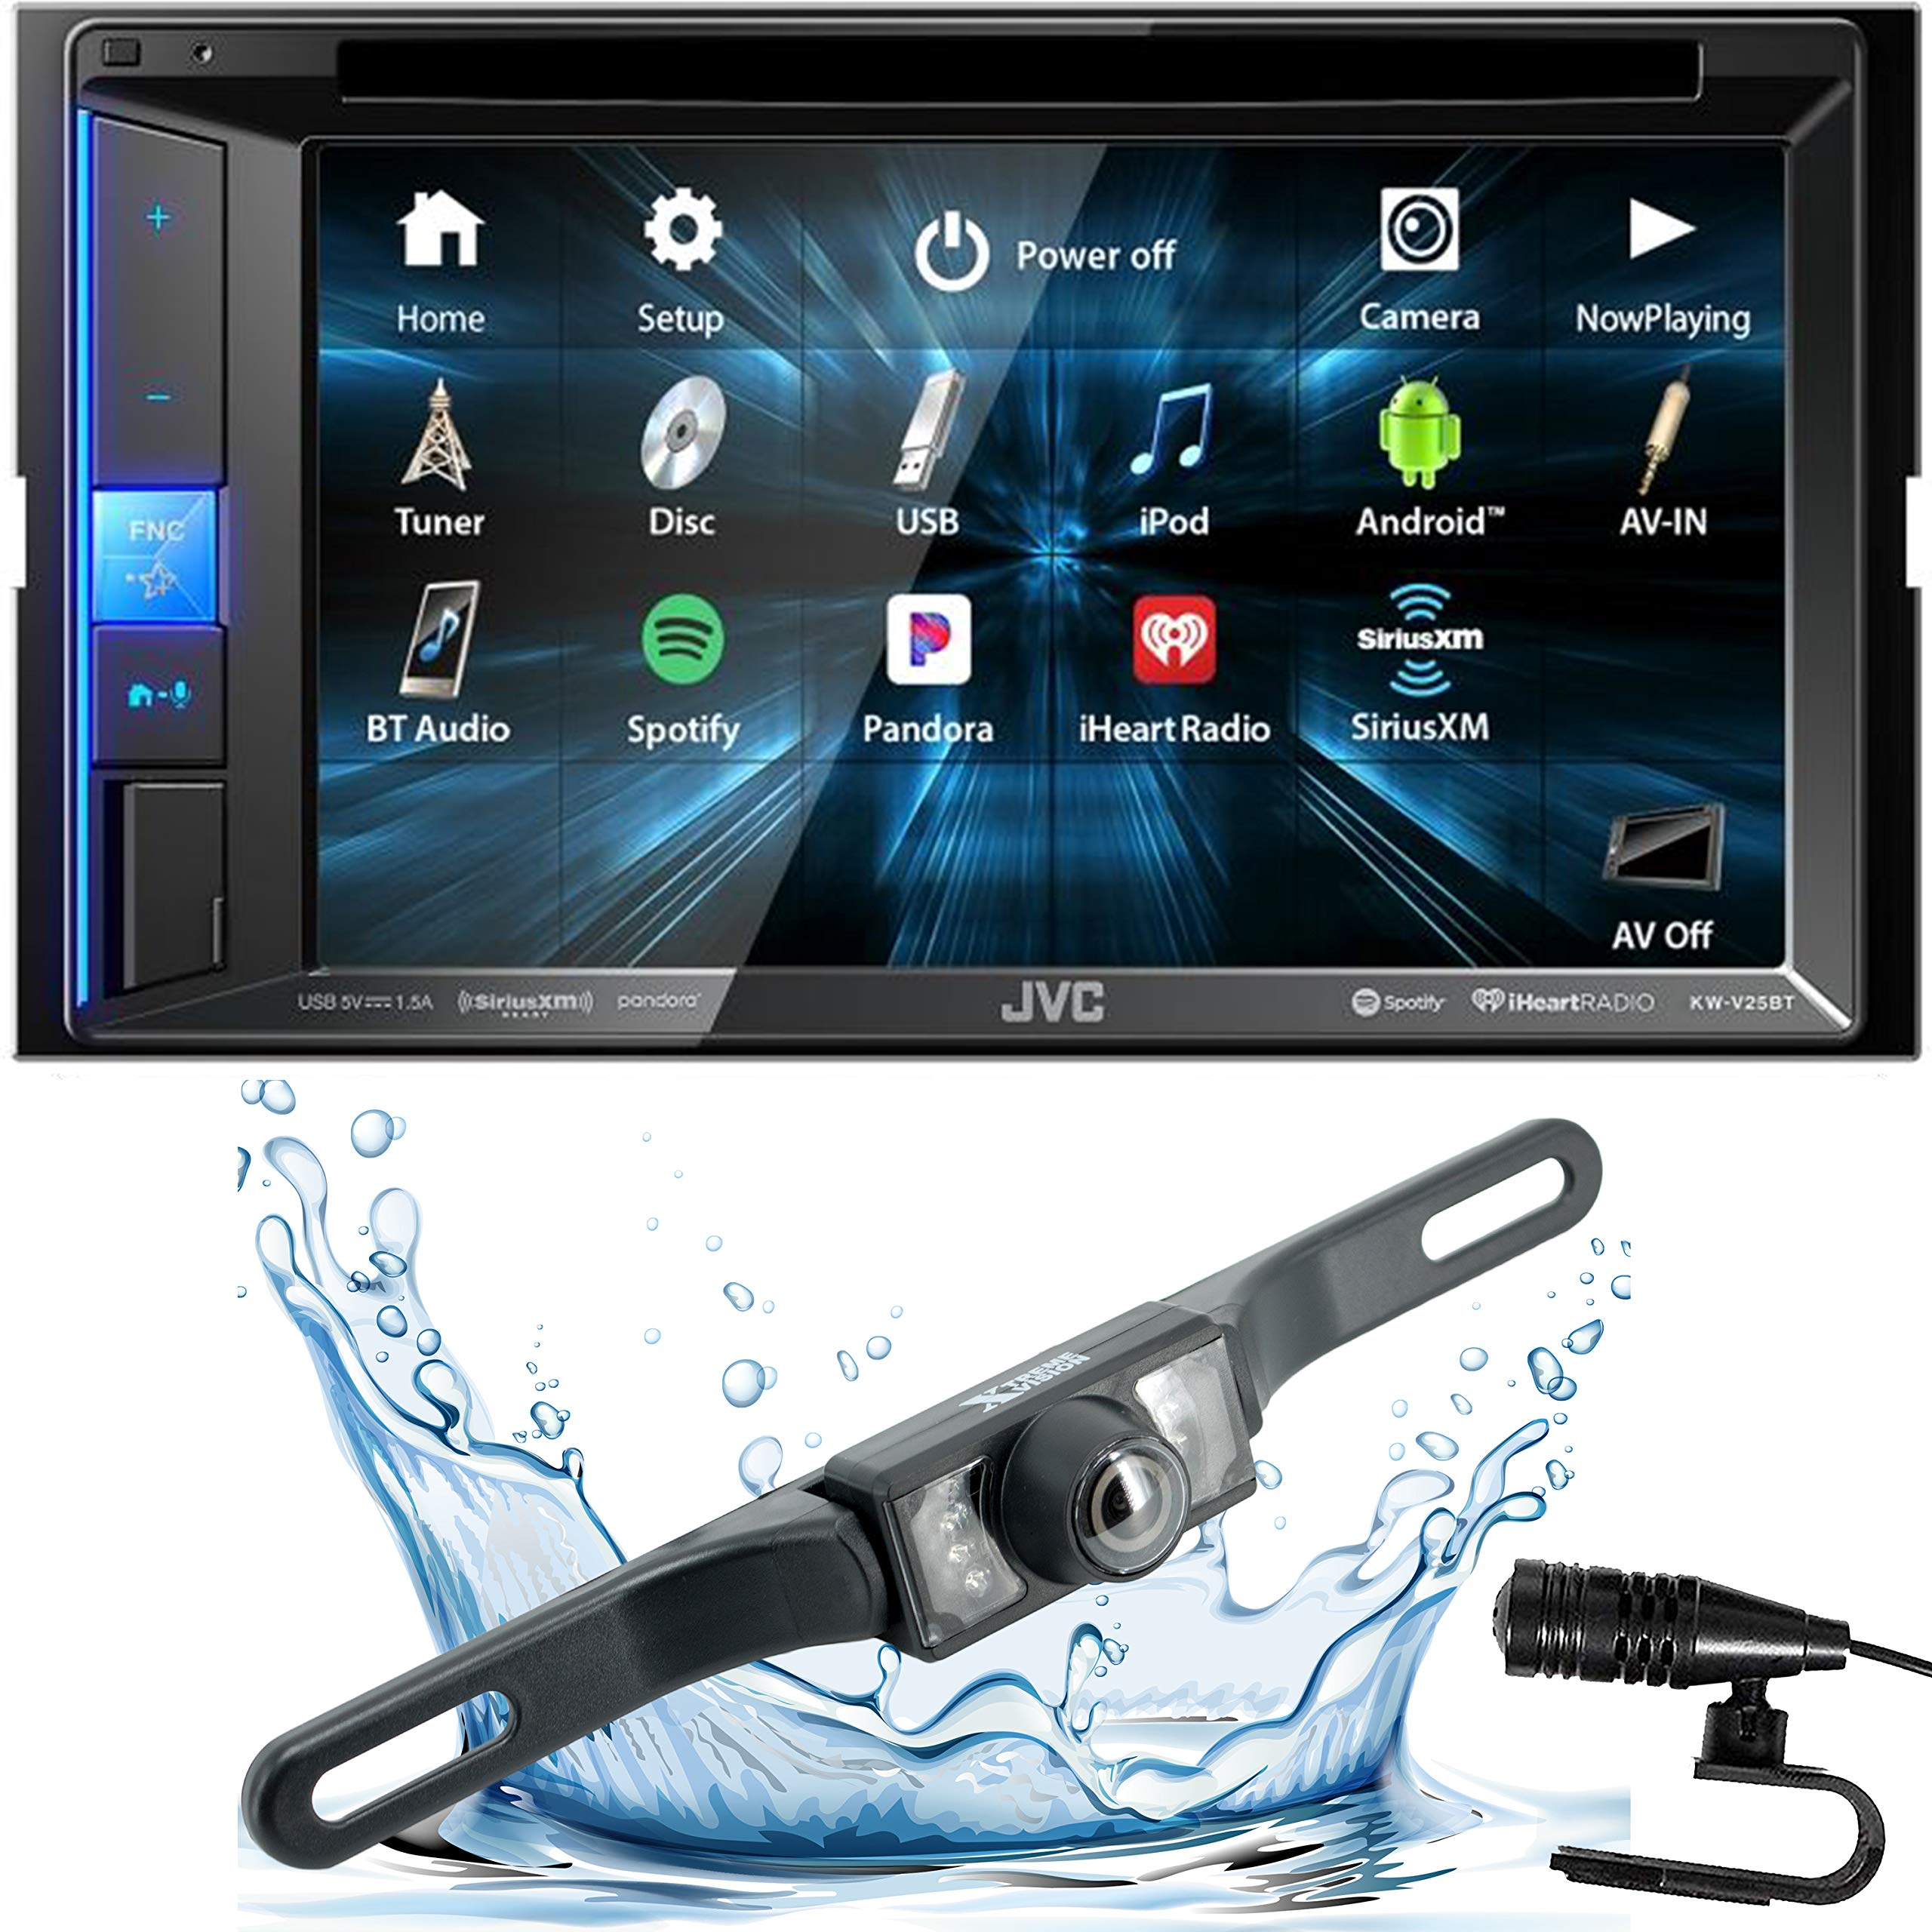 JVC KW-V25BT Double DIN in-Dash Bluetooth CD/DVD/AM/FM/Digital Media Car Stereo Receiver w/ 6.2'' Touchscreen, Pandora, Spotify and iHeartRadio Control + HD Backup Camera by JVC